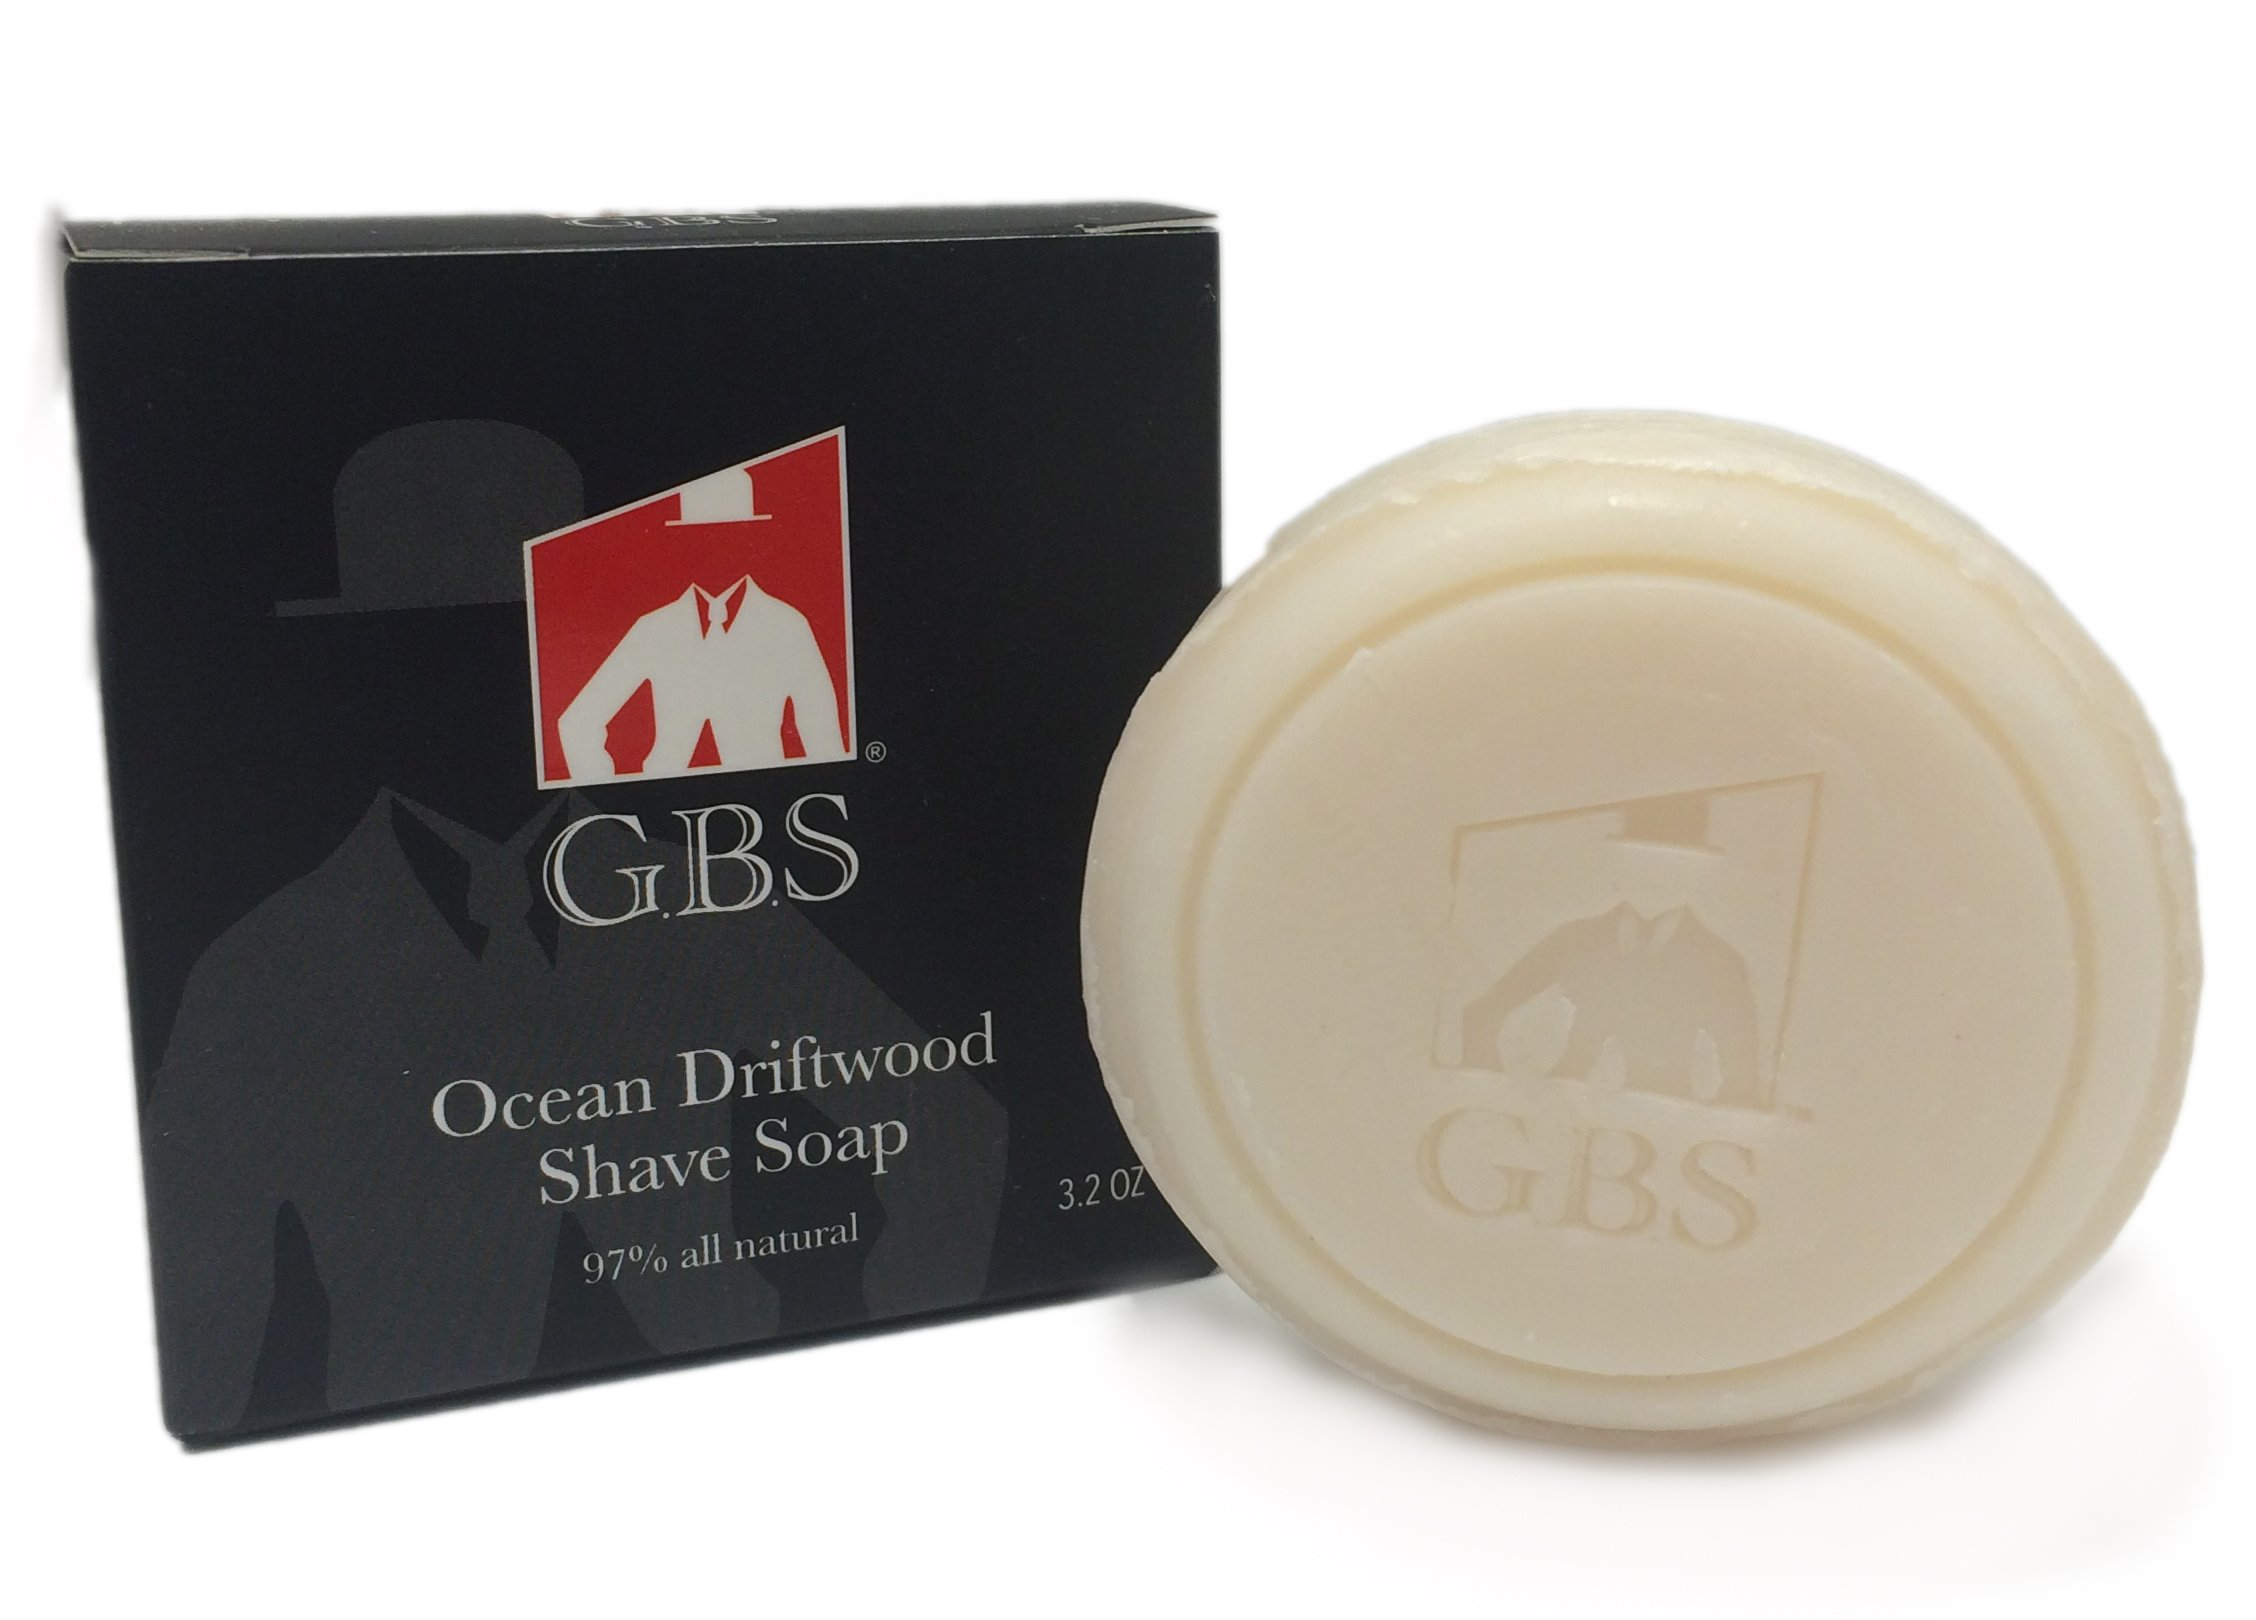 GBS Ocean Driftwood 97% All Natural Shave Soap Made in the USA - GBS (1) - Creates a Rich Lather Foam for Men and Women Ultimate Wet Shaving Experience